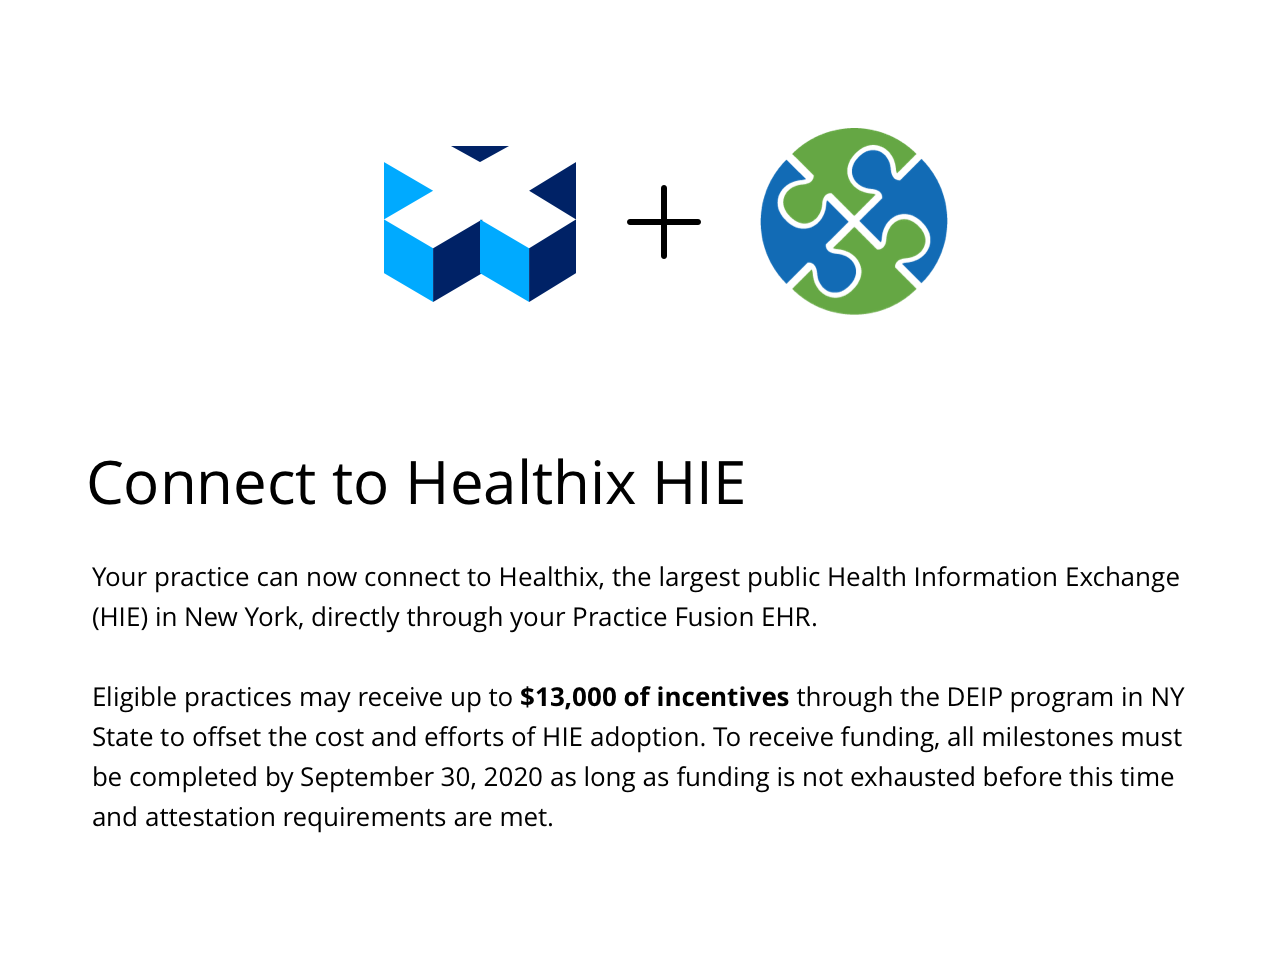 Your practice can now connect to Healthix, the largest public Health Information Exchange (HIE) in New York, directly through your Practice Fusion EHR